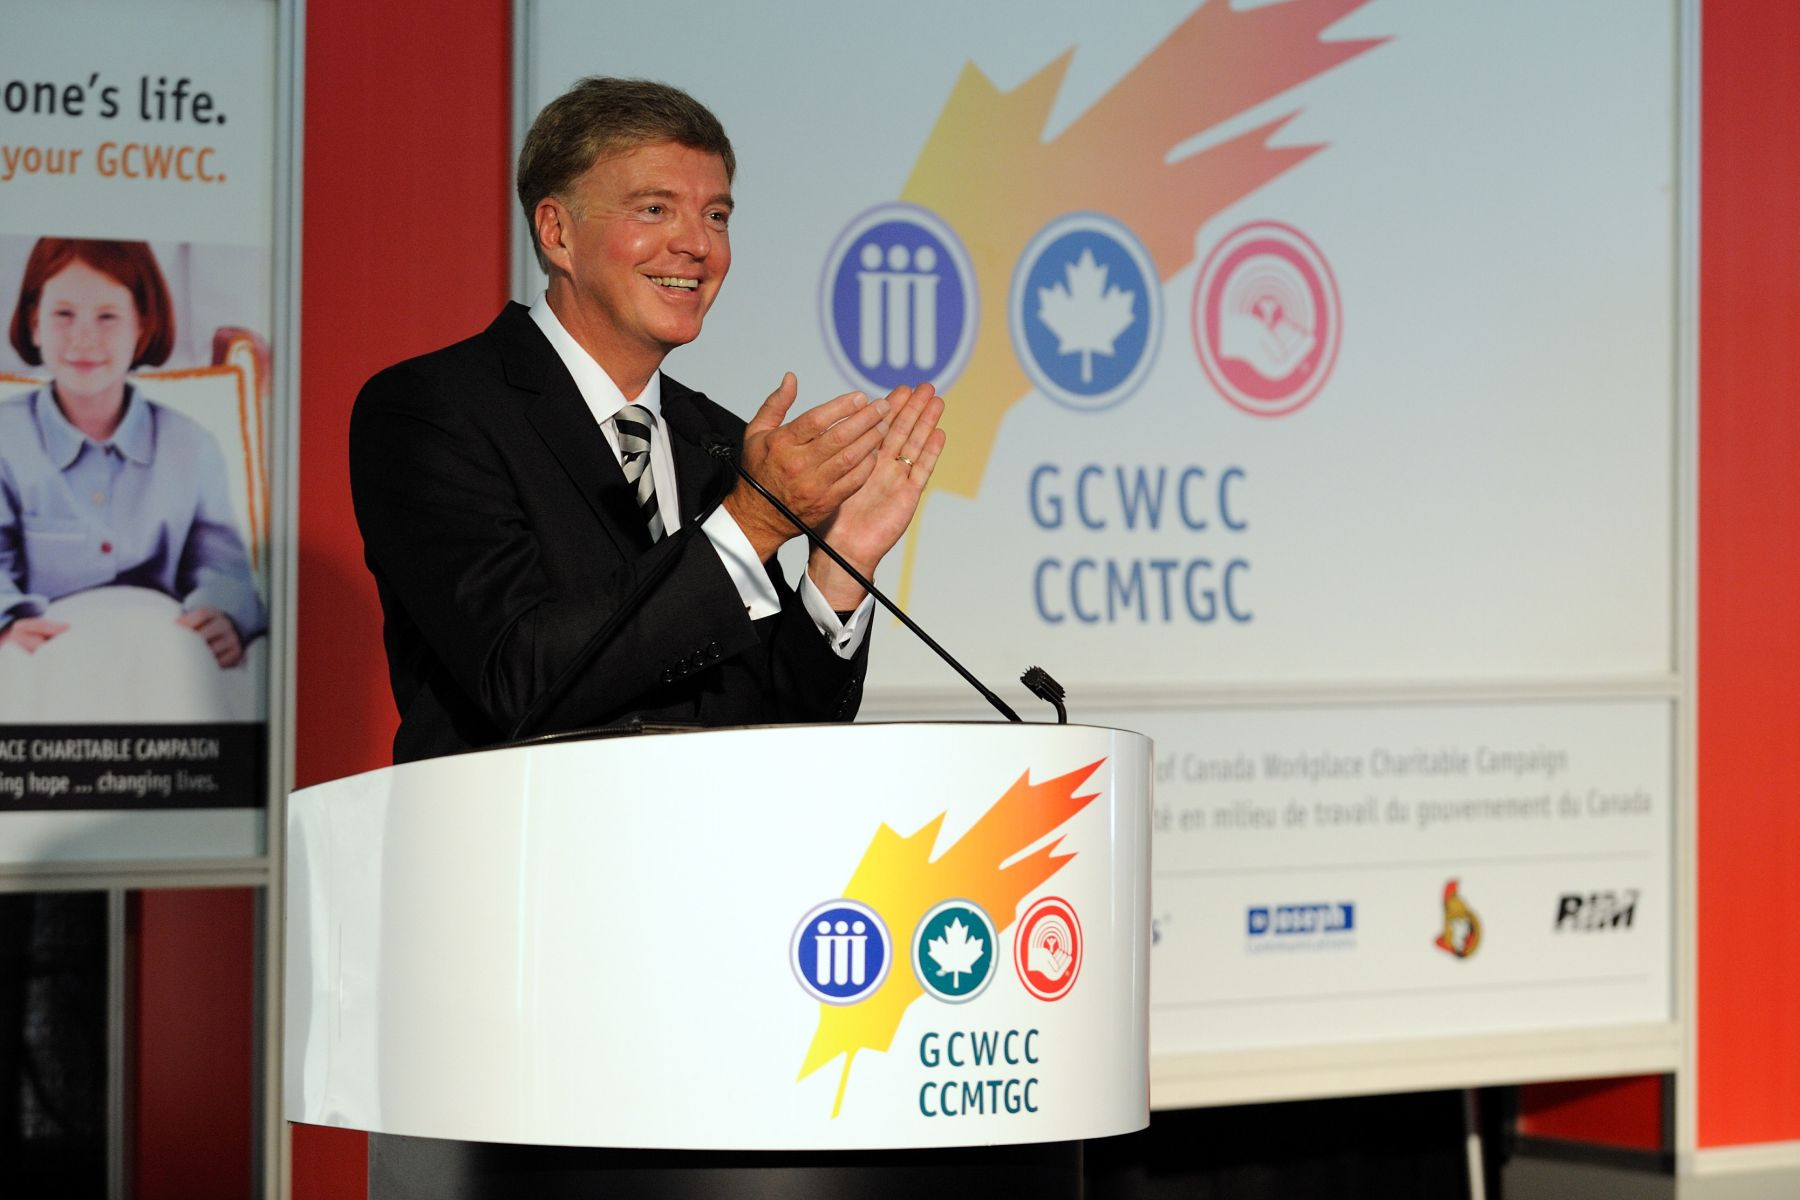 Mr. François Guimont, Deputy Minister of Public Works and Government Services and the 2011 National Government of Canada Workplace Charitable Campaign (GCWCC) Chair, also provided remarks.